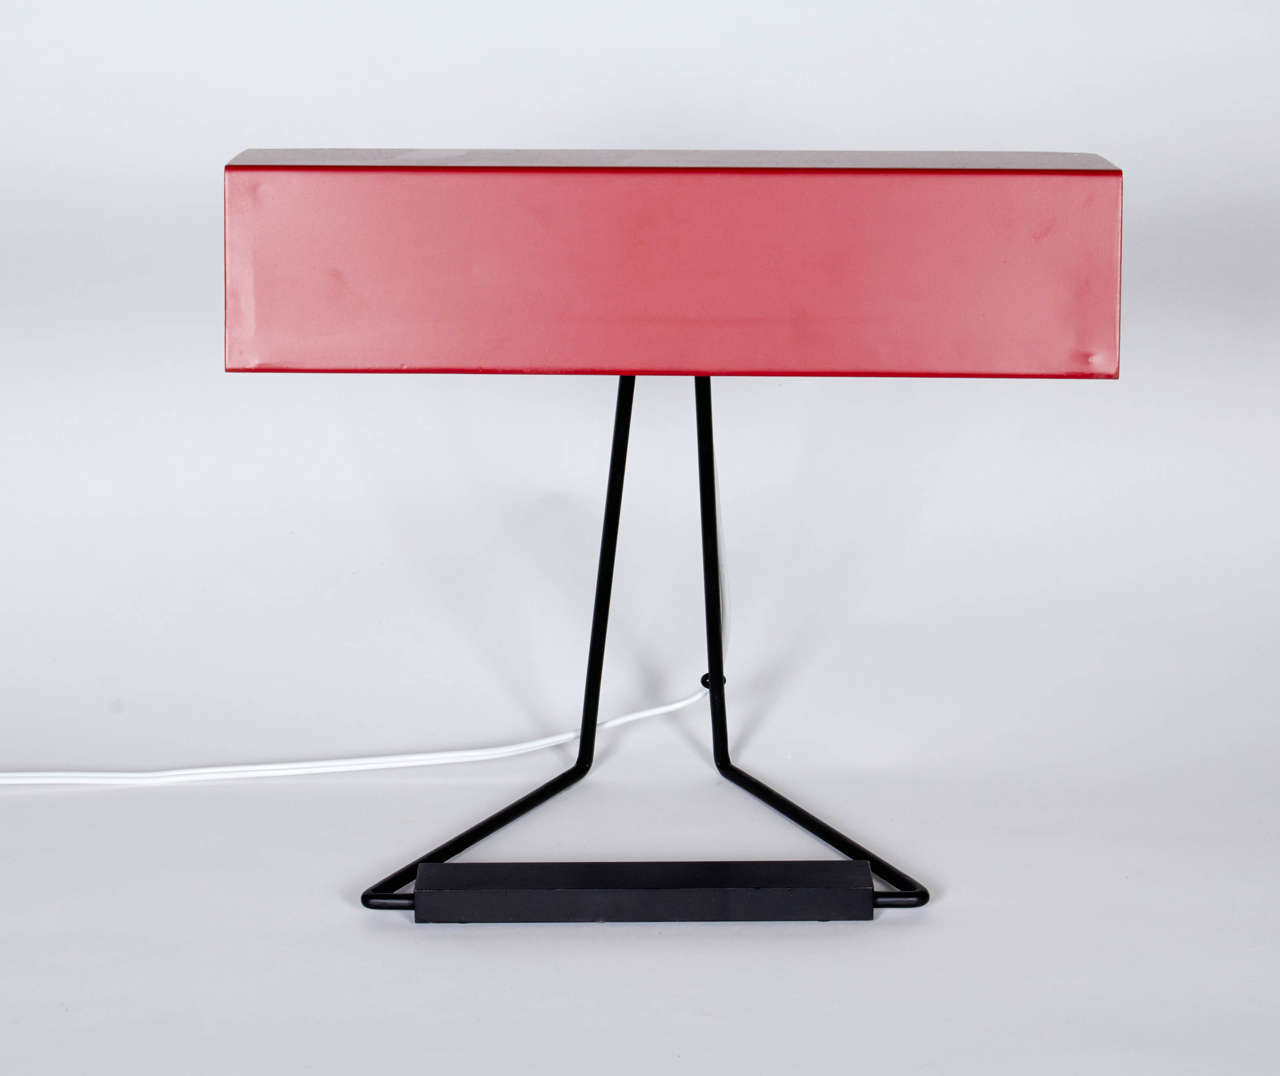 This table or desk lamp with simple and clean lines represents the essence of 1950s Italian design aesthetics. It was previously listed in it's original condition and has since been repainted as part of a restoration. The last two photos show the